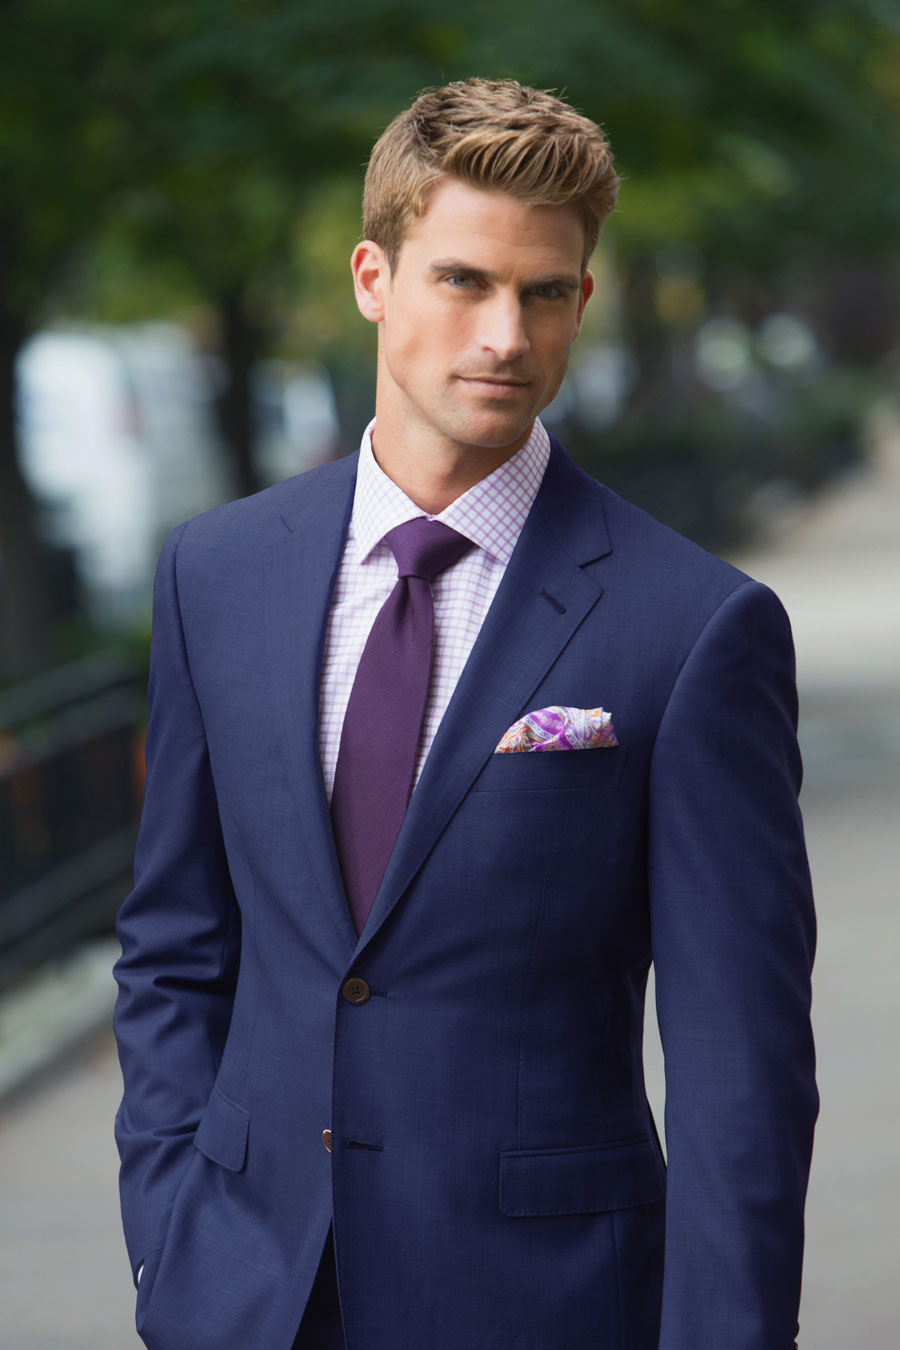 Bright-Blue-Sharkskin-Custom-Suit-Lavender-Check-Tailored-Shirt-Purple-Tie-Chicago-900.jpg